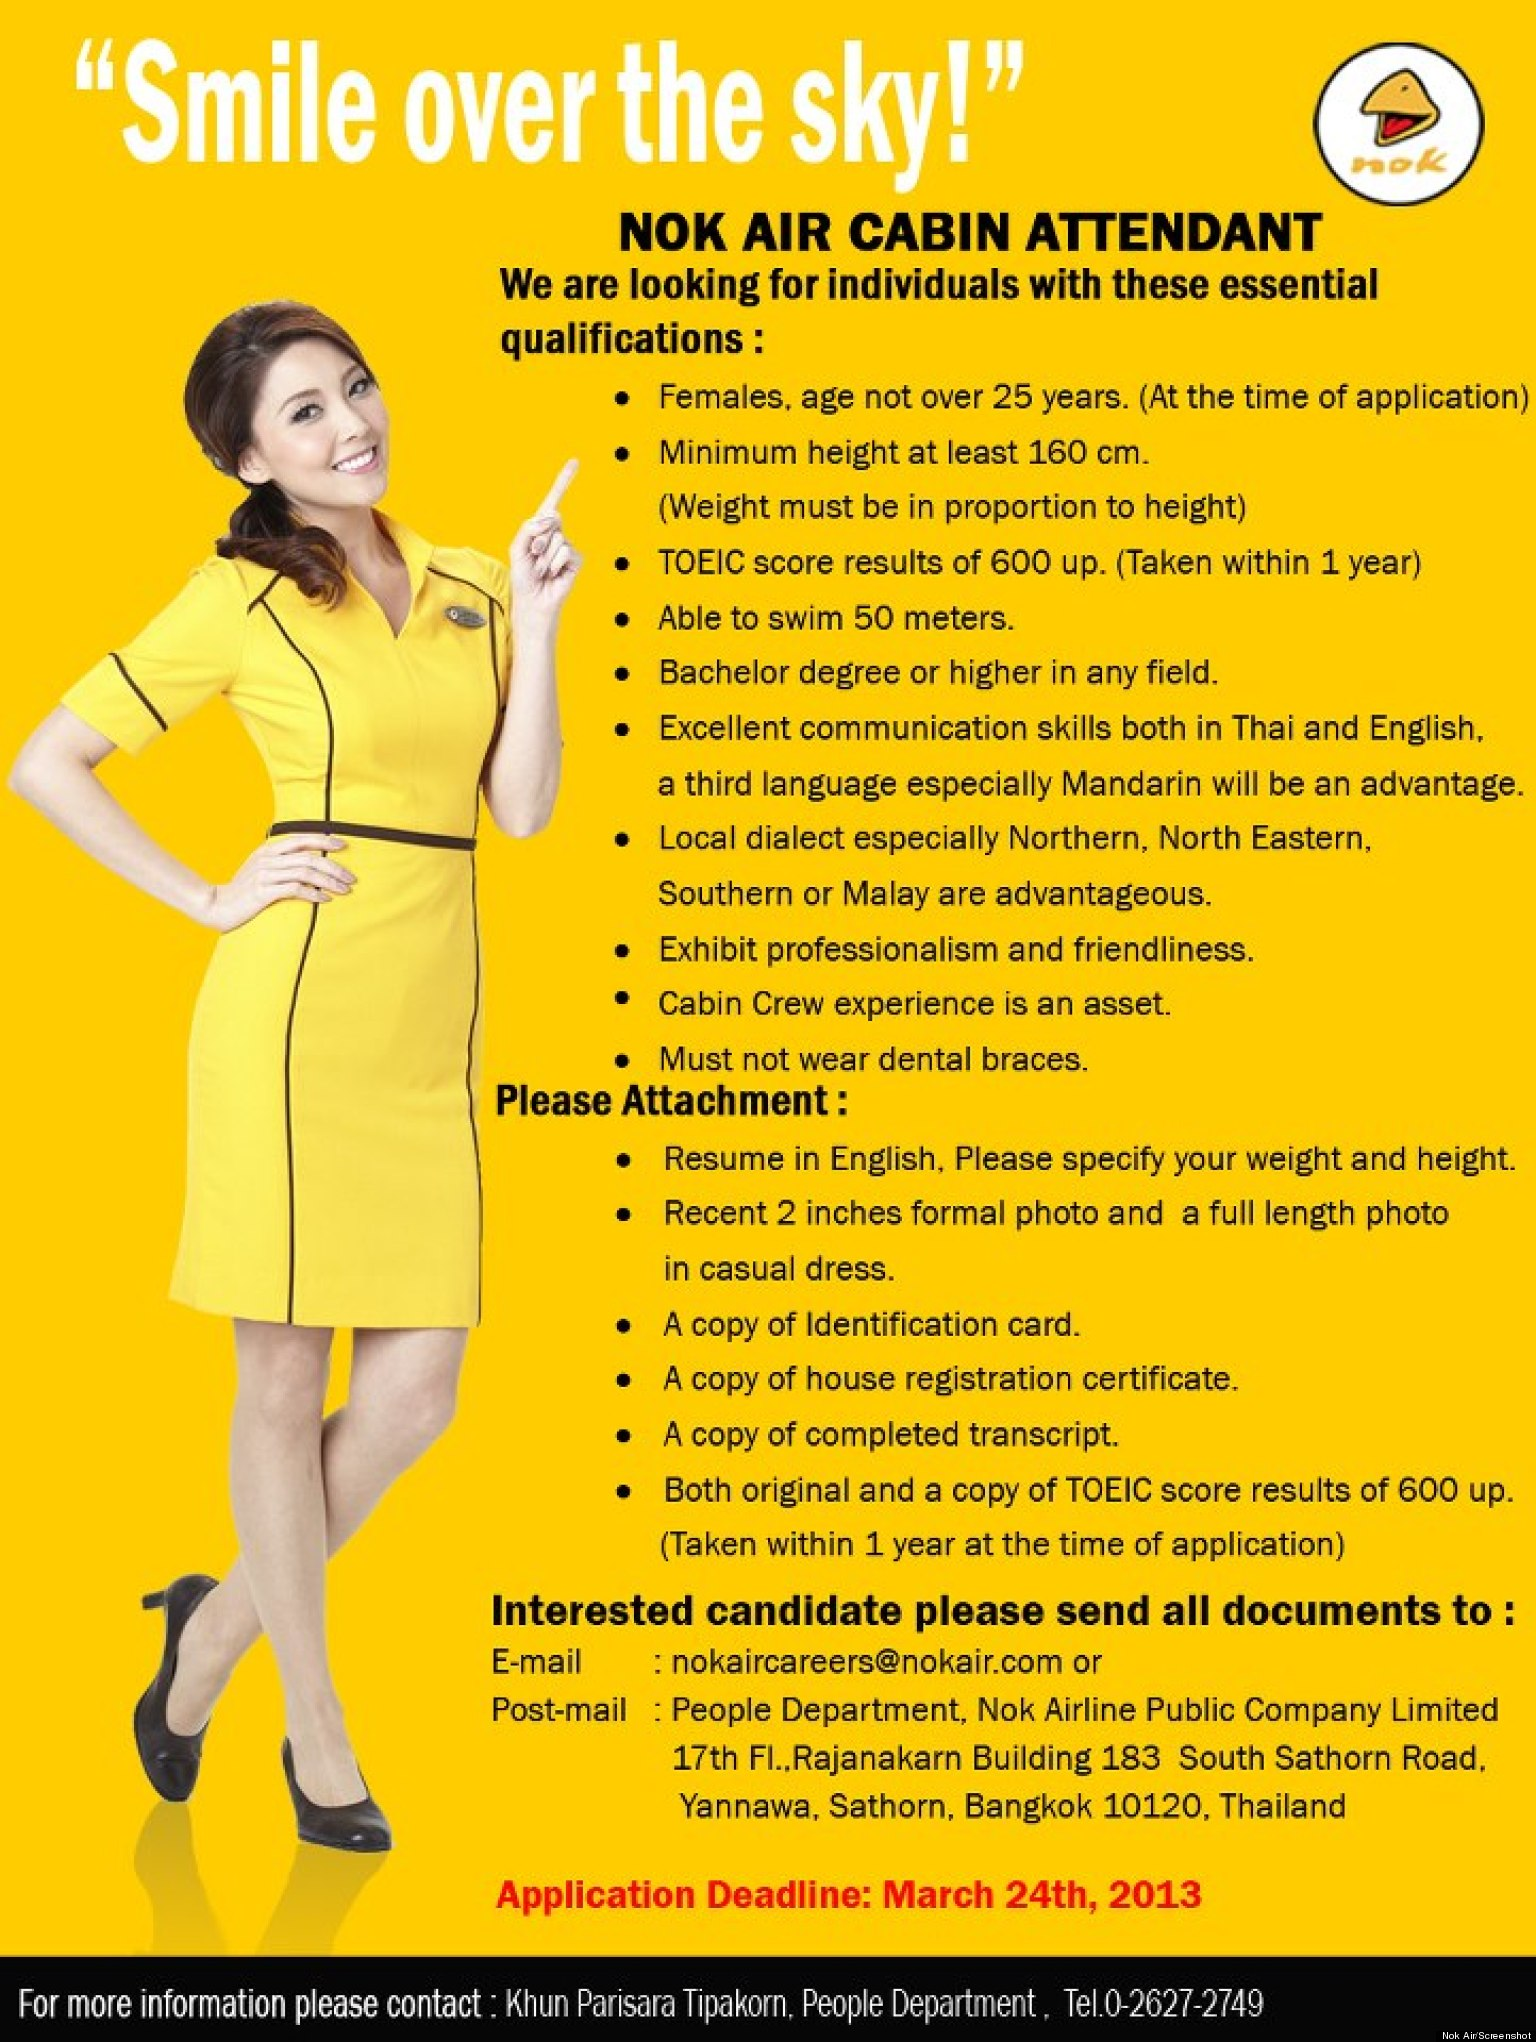 Nok Air Flight Attendants Airline Looking For Young